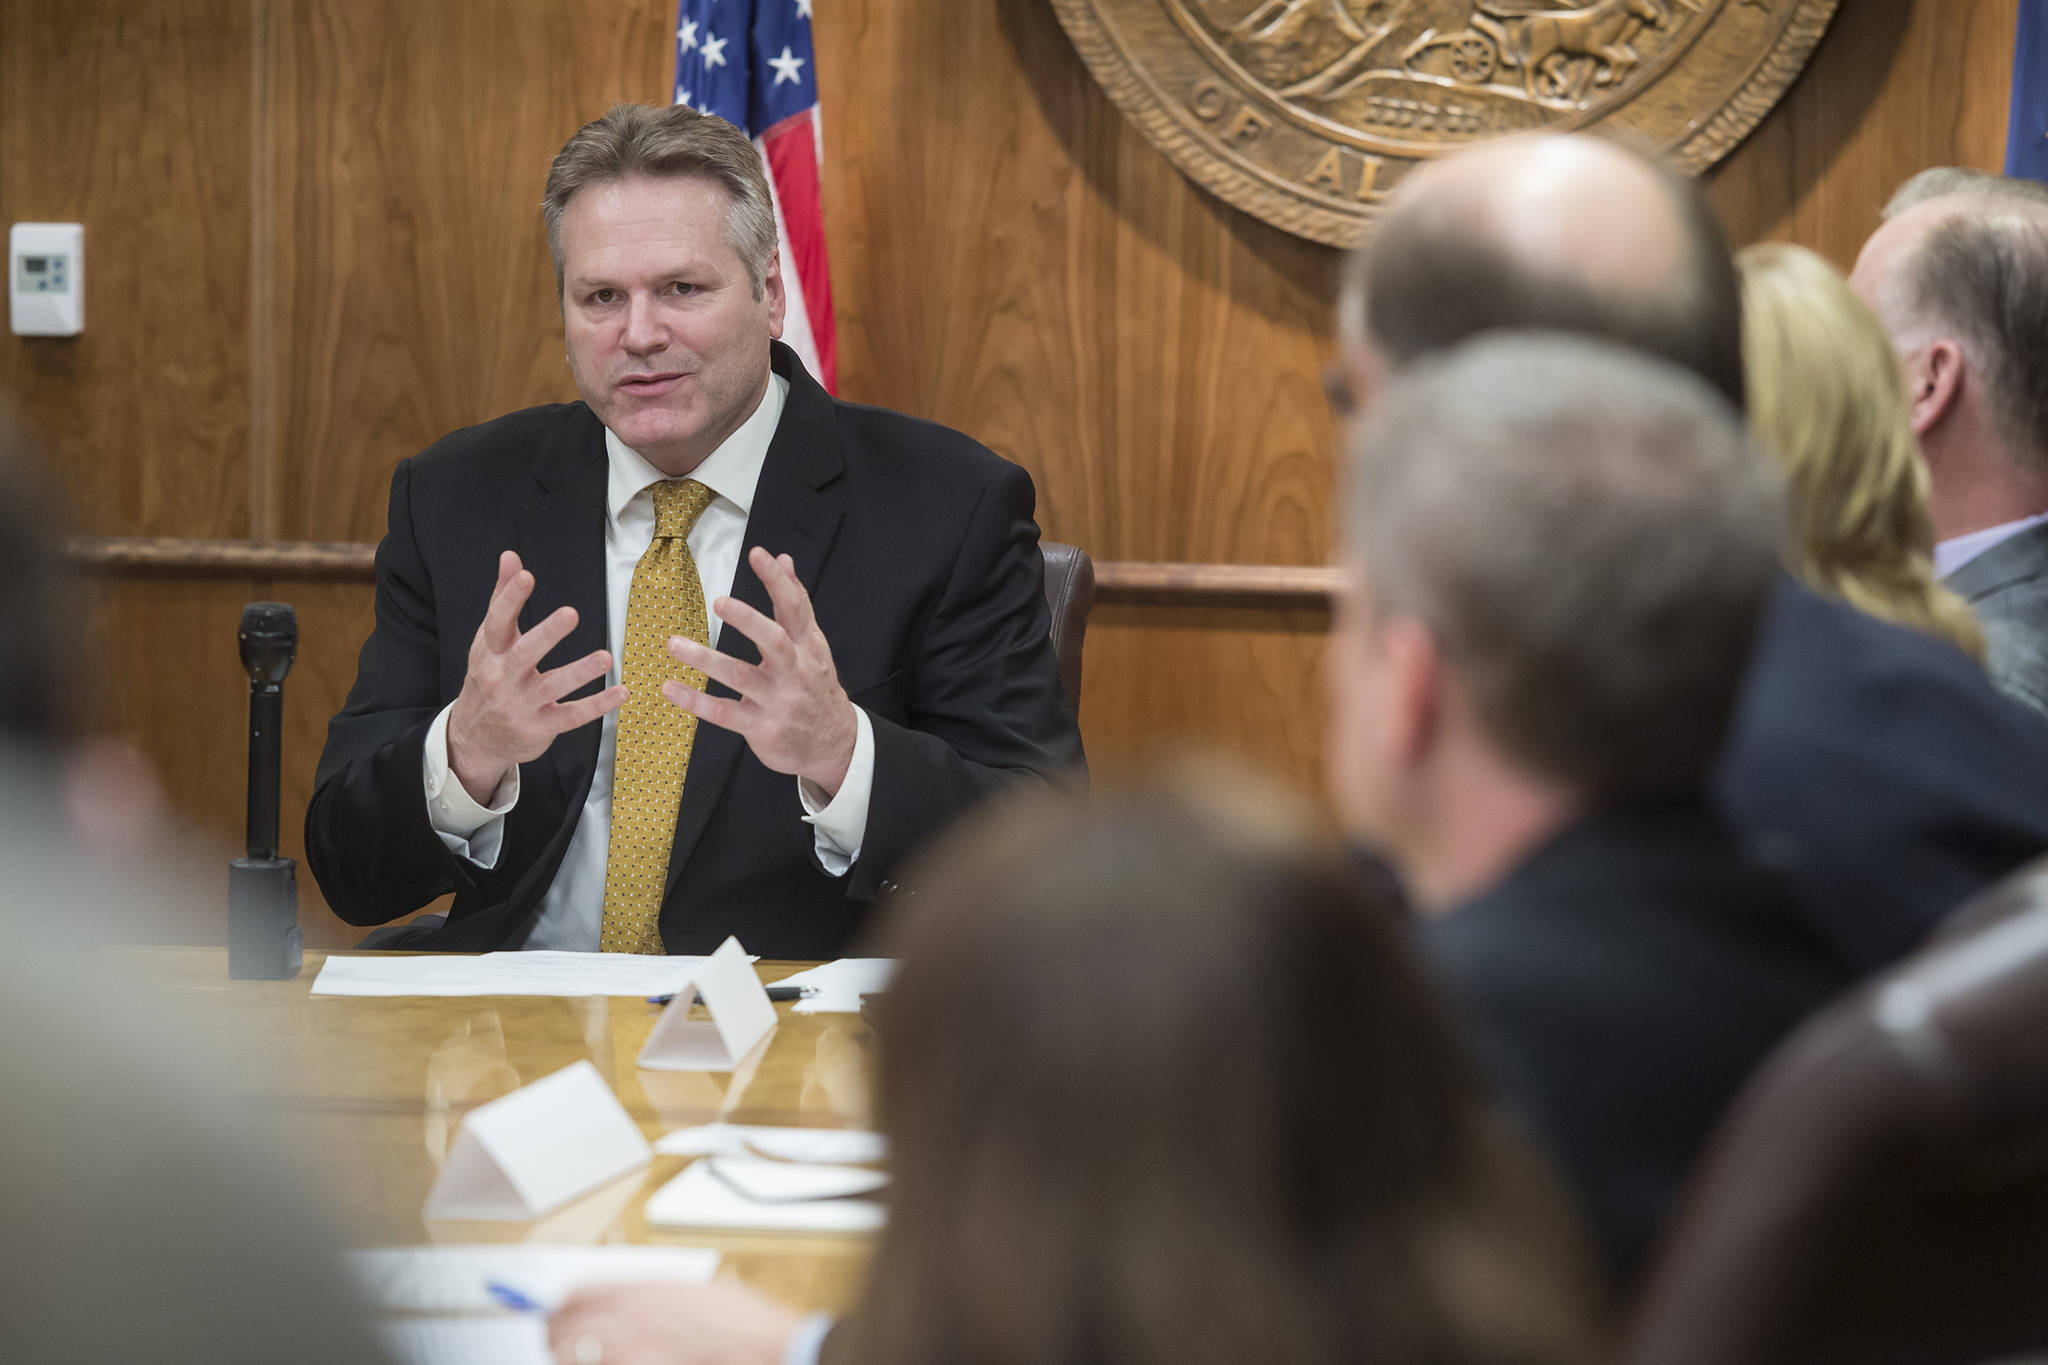 Gov. Mike Dunleavy meets with his cabinet members and gives attending media a list of his administration's priorities at the Capitol on Tuesday, Jan. 8, 2019. The 31st Legislative Session opens next Tuesday. (Michael Penn | Juneau Empire)